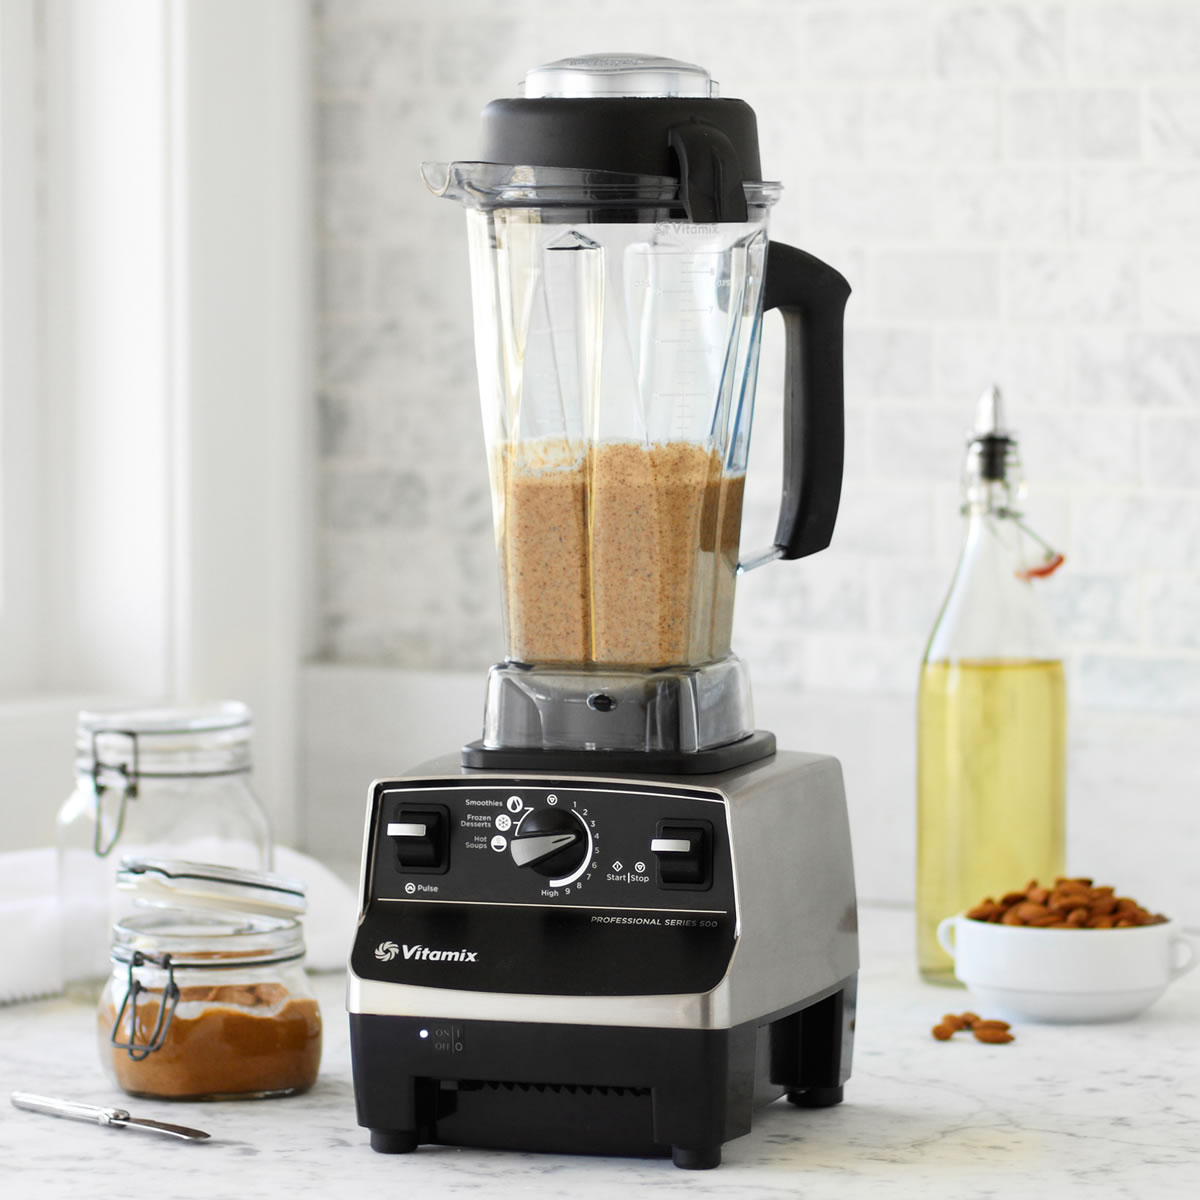 ... go back to another blender again after you use the Vitamix blender